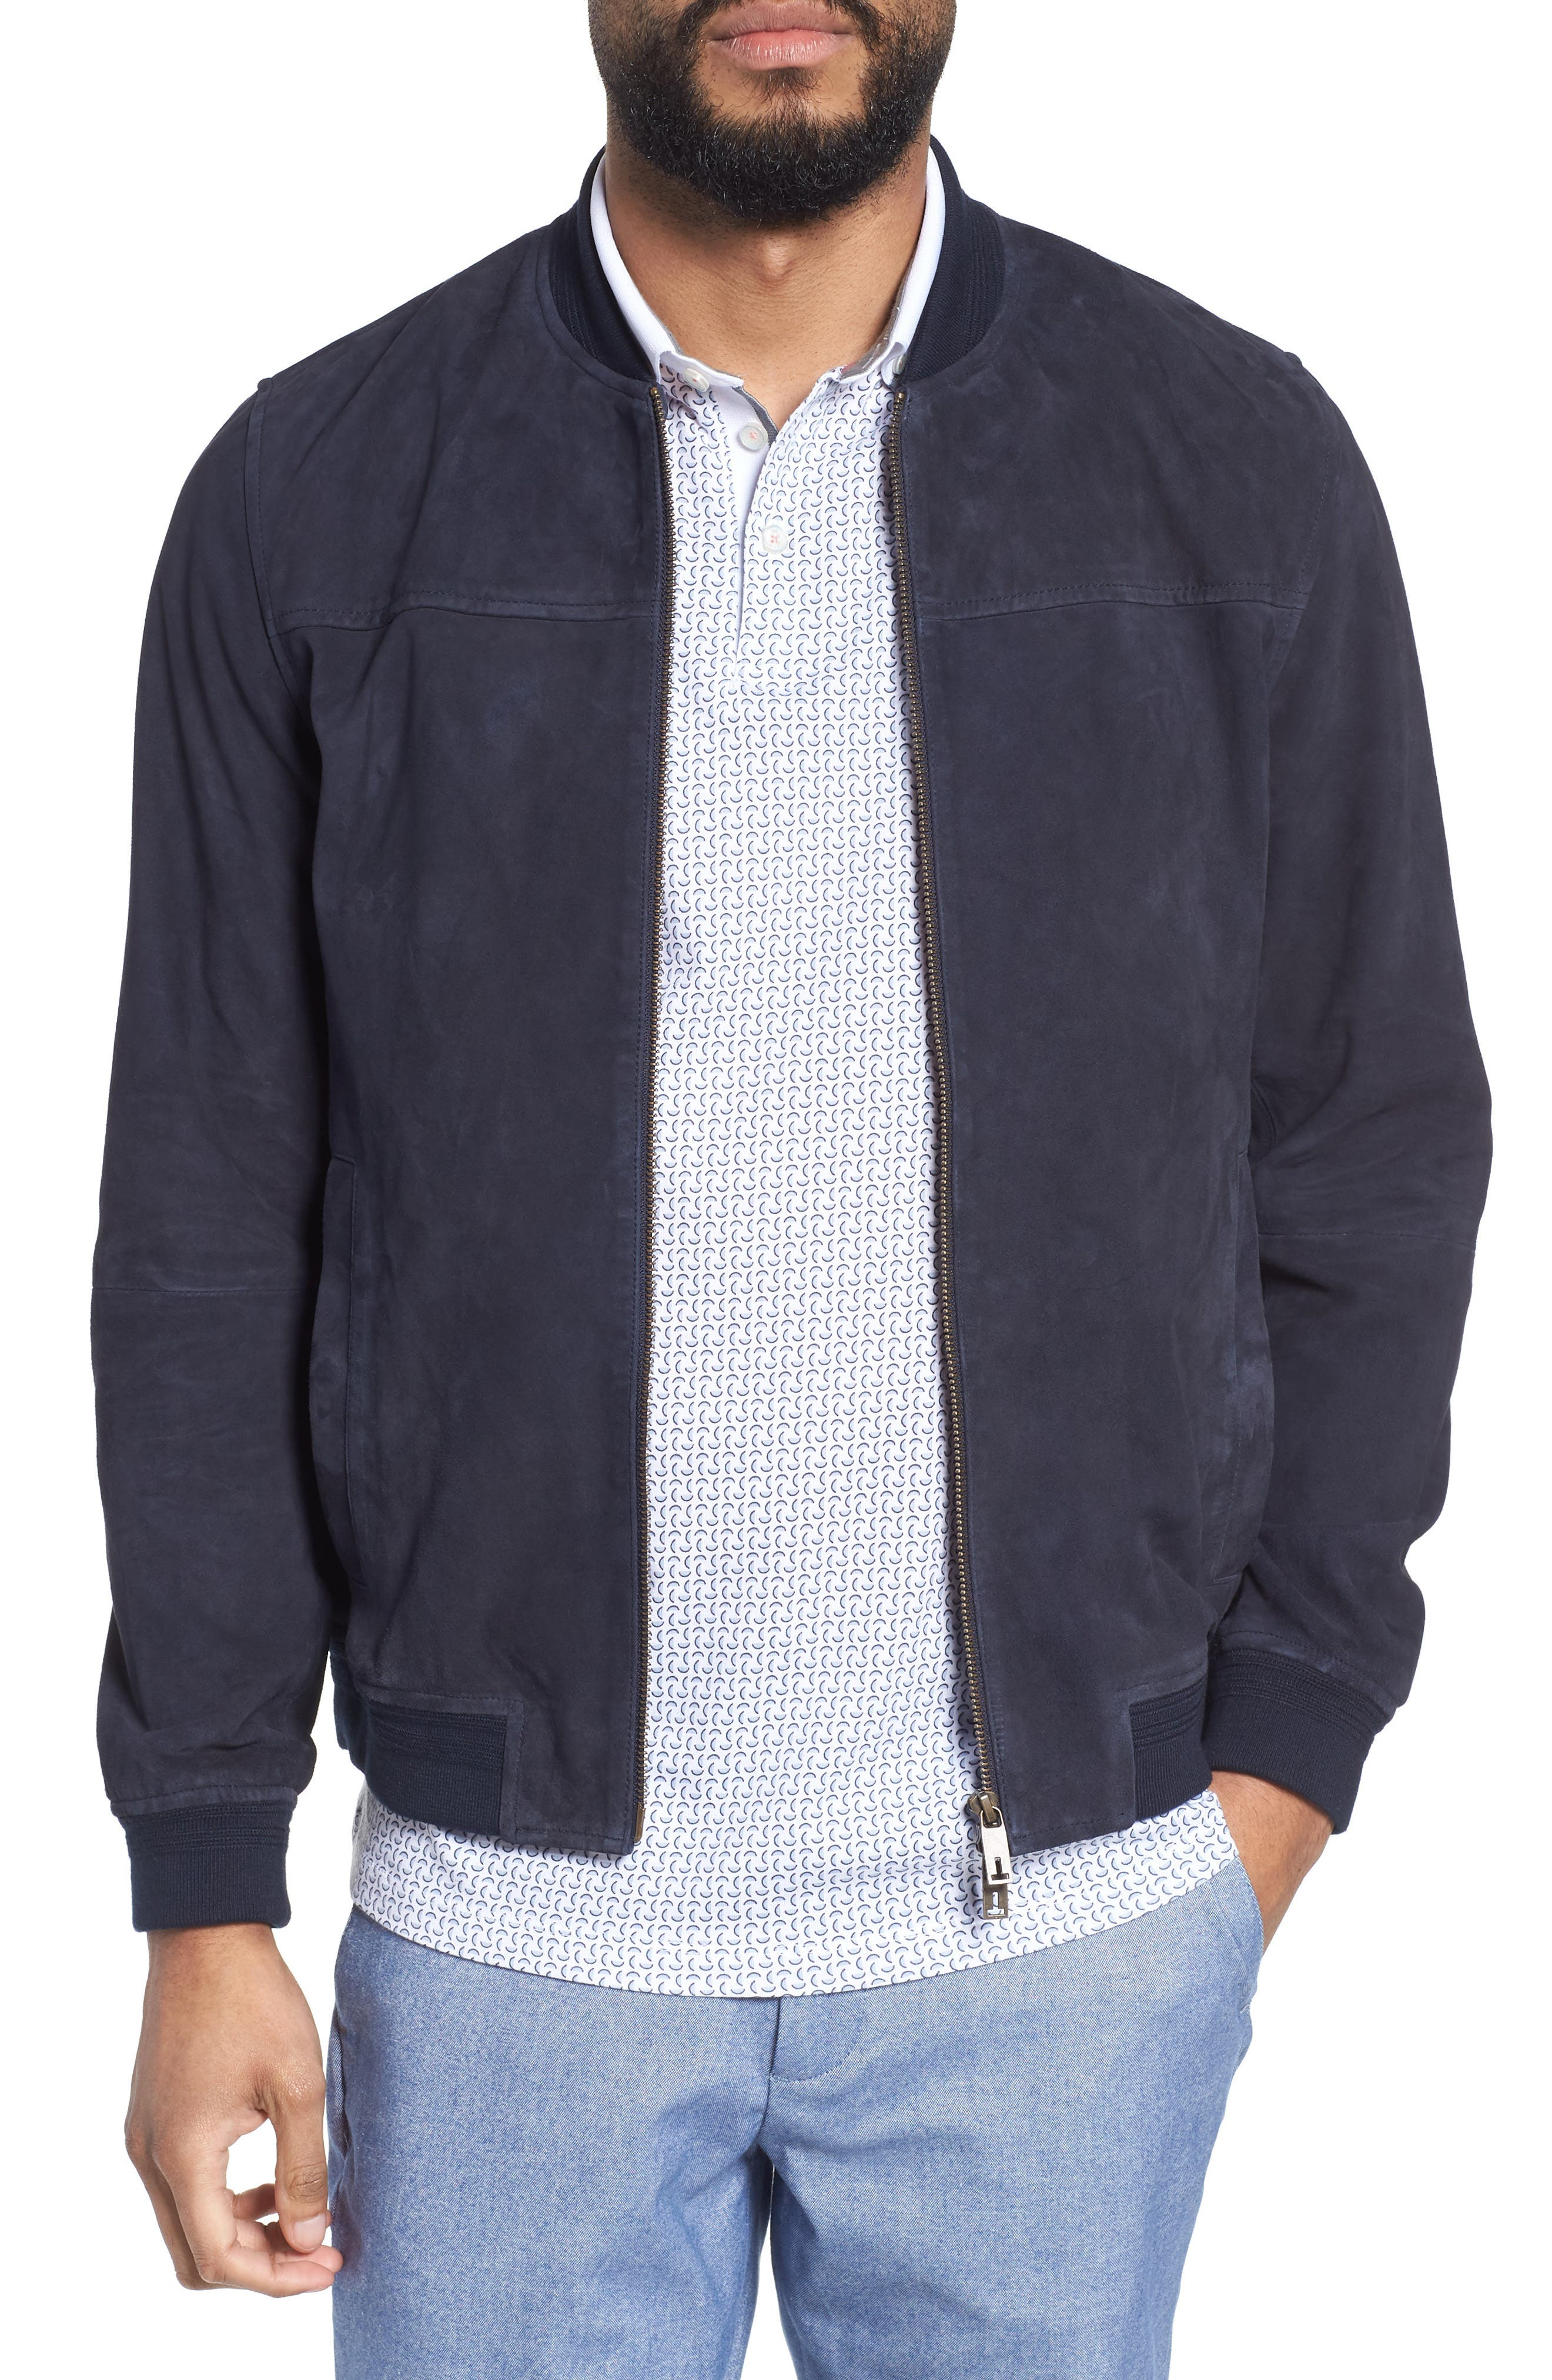 Alibi Trim Fit Suede Bomber Jacket,                         Main,                         color, Navy